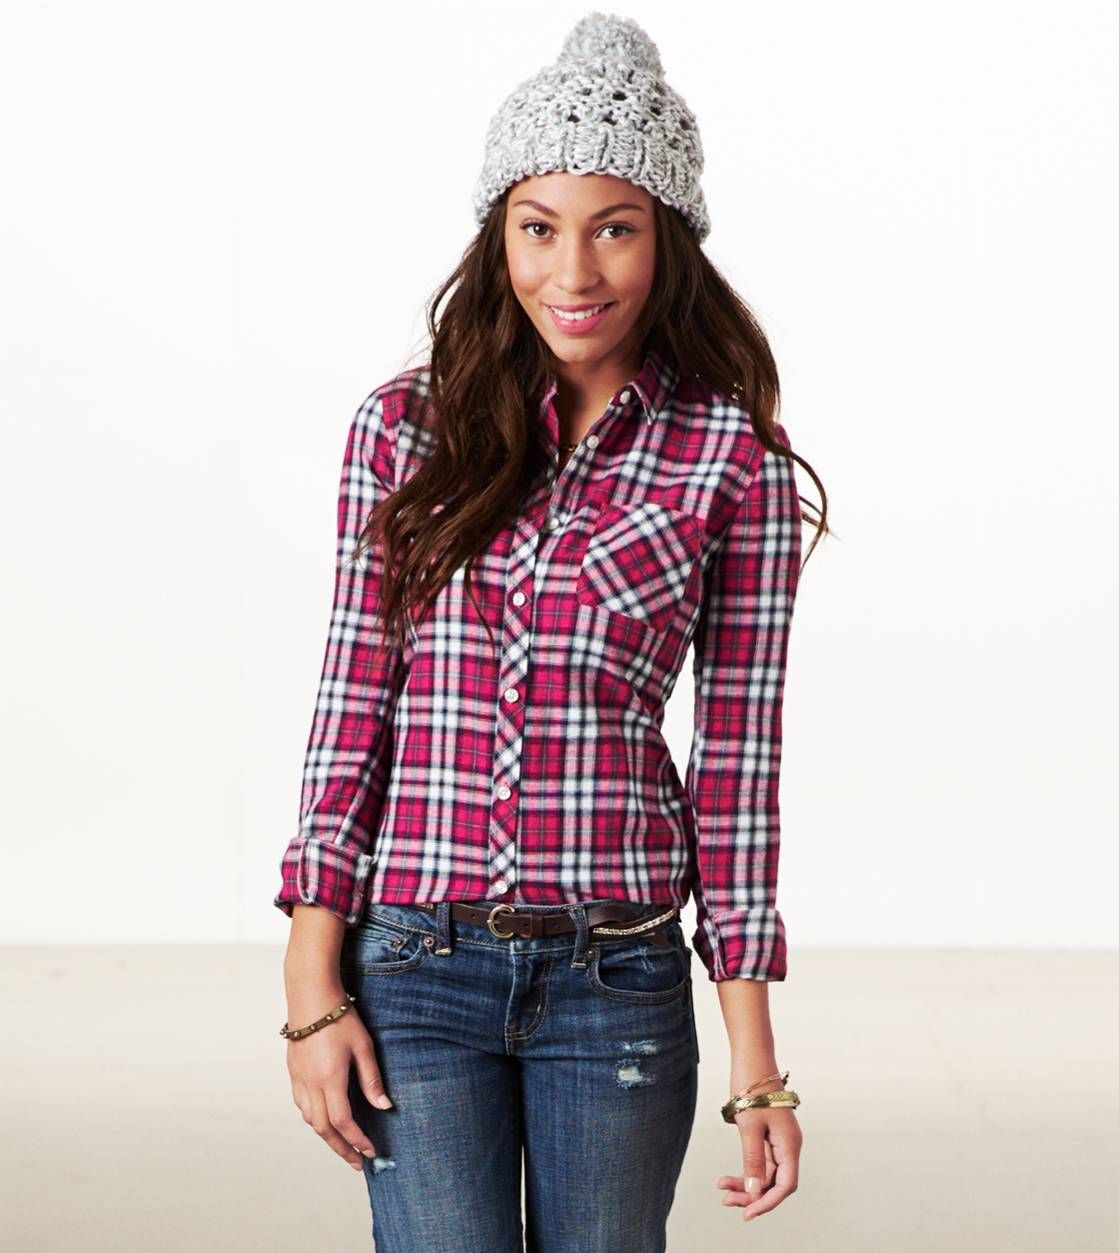 Navy blue flannel shirt womens  American Eagle Real Soft Heritage Plaid Shirt pink or burgundy ihave